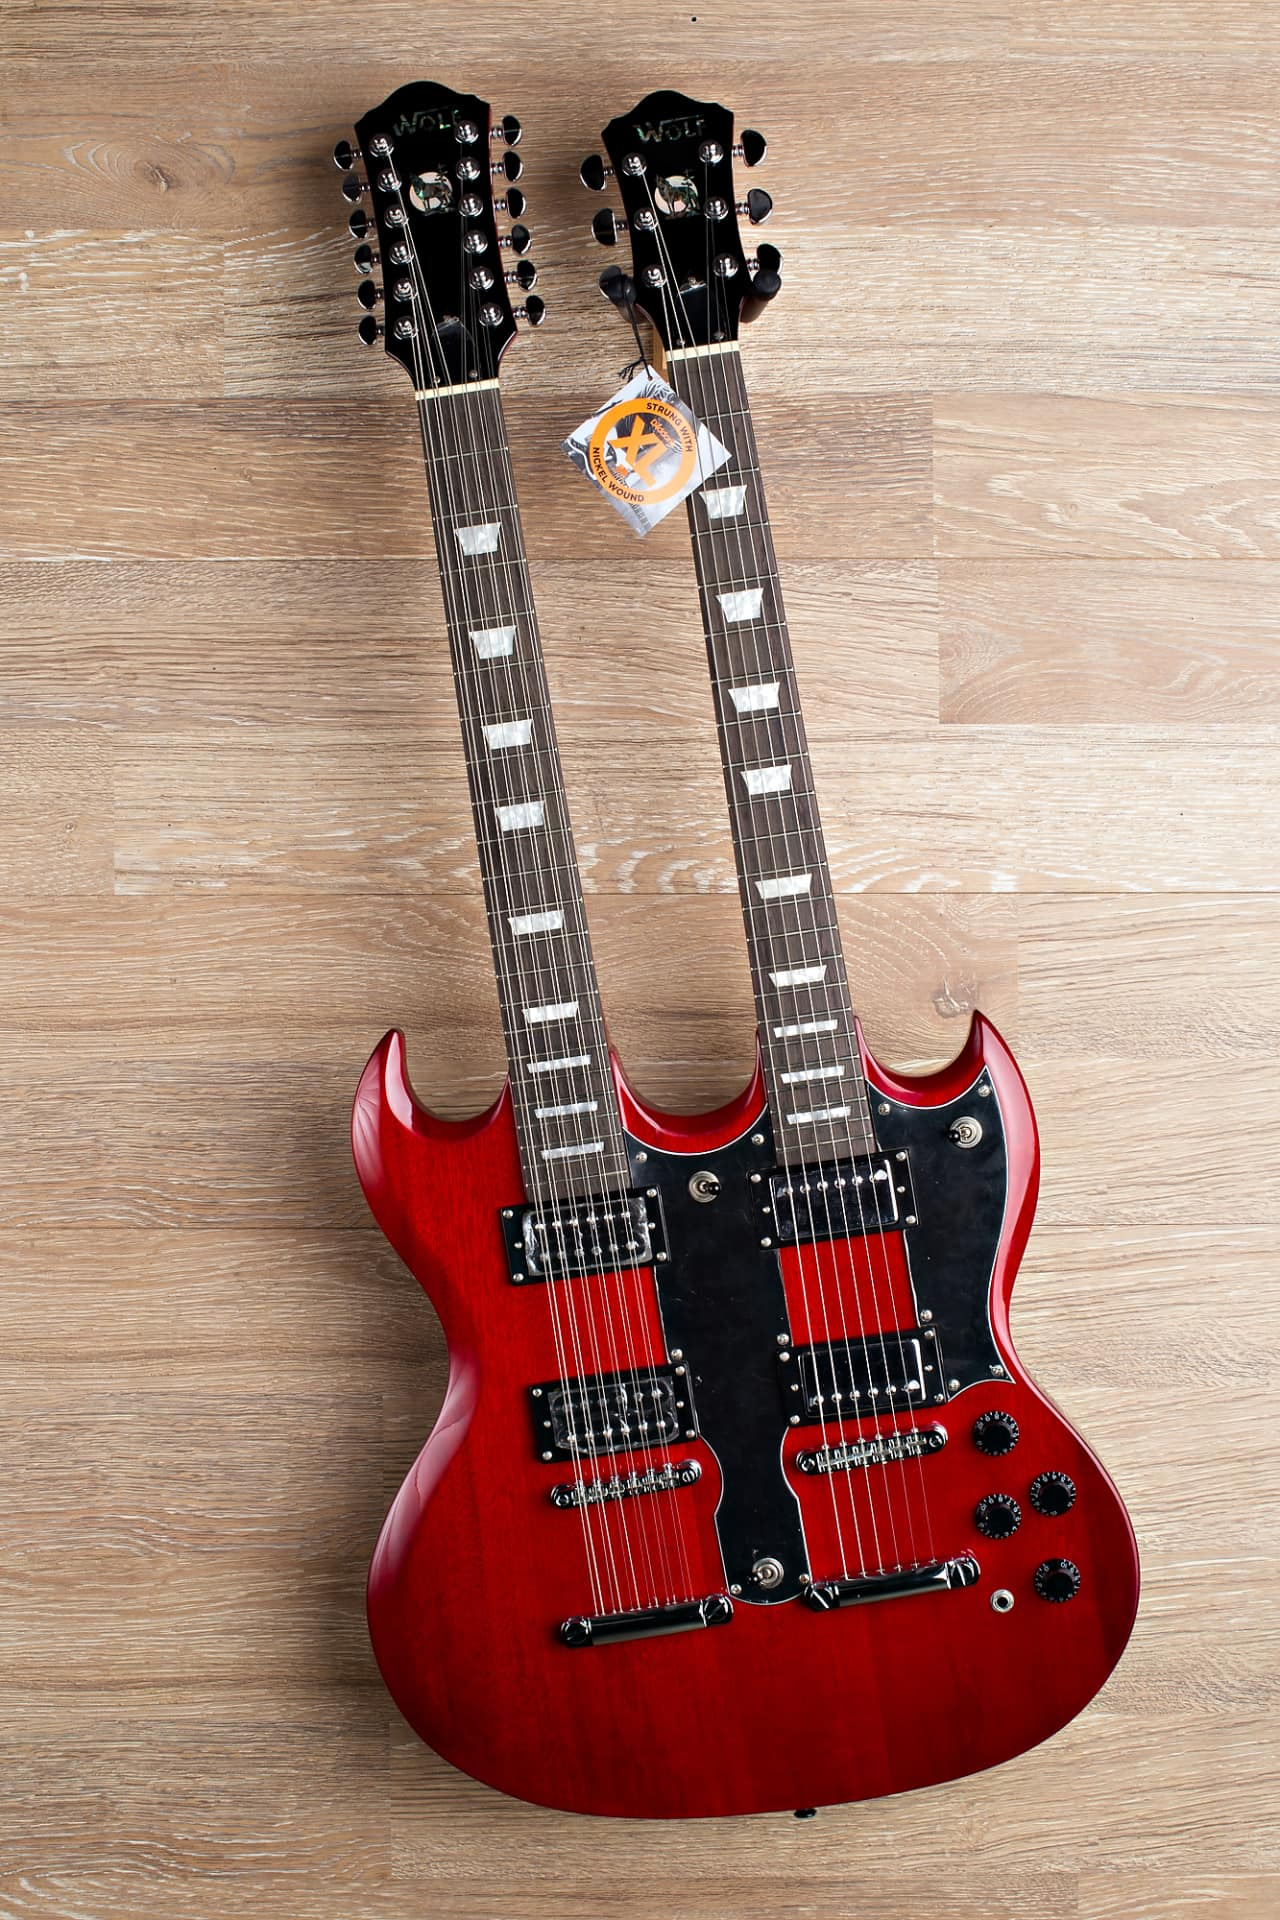 Wolf Double Neck Wsg Electric Guitar Trans Red 2017 2 8